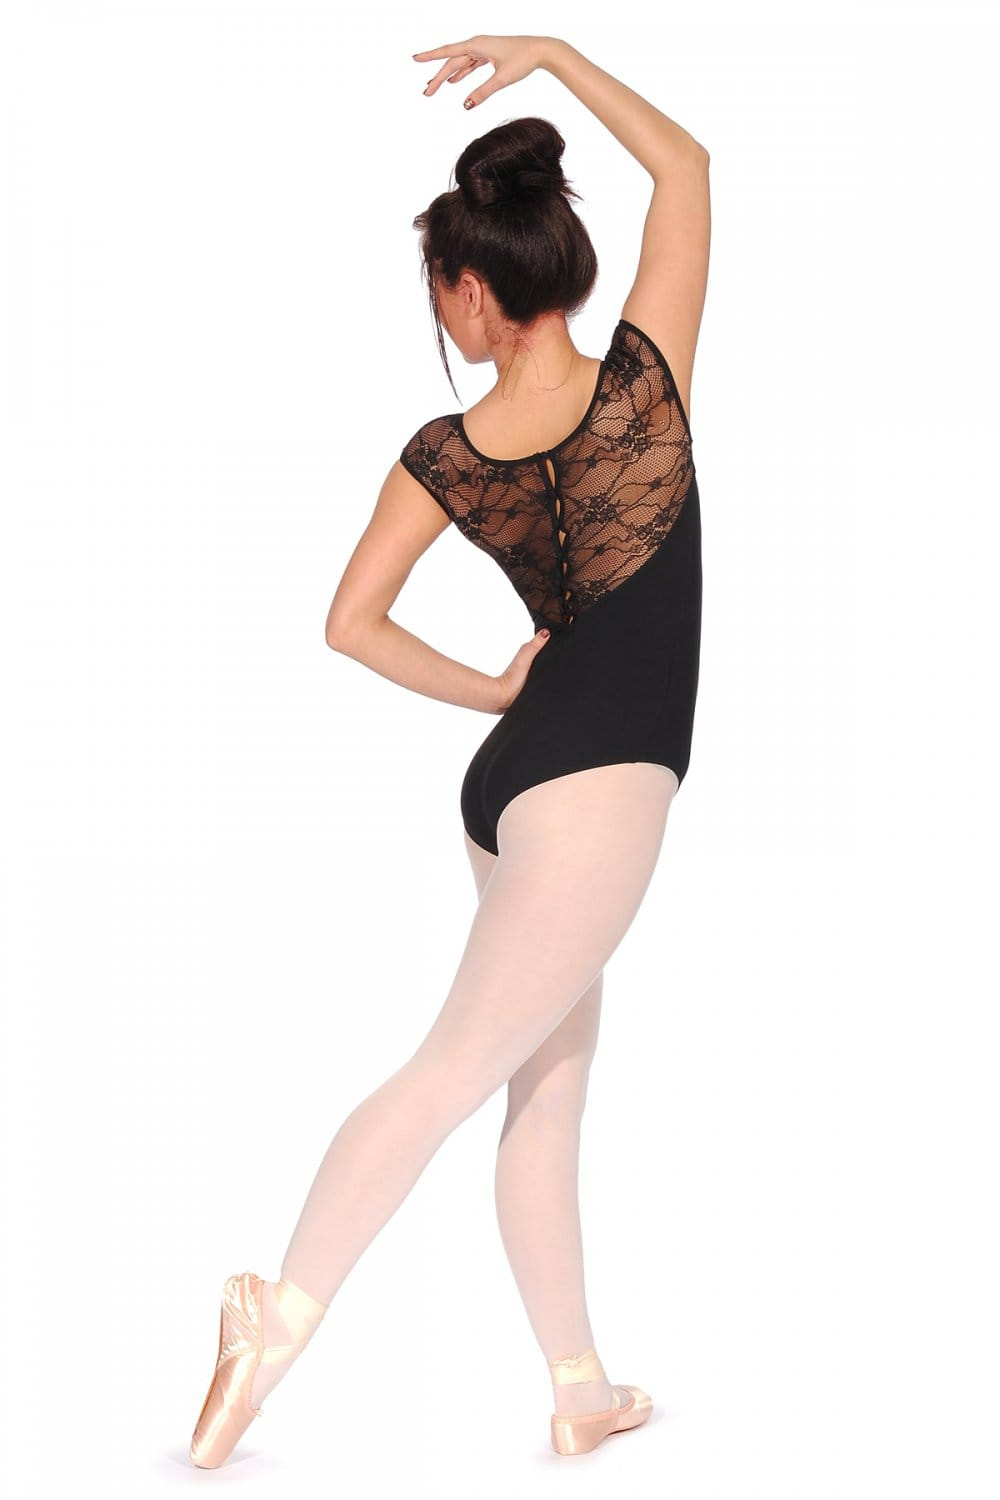 Amy Girls//Ladies BALLET LEOTARD Cotton Cap Sleeved Dance Leotard RAD Style Exam